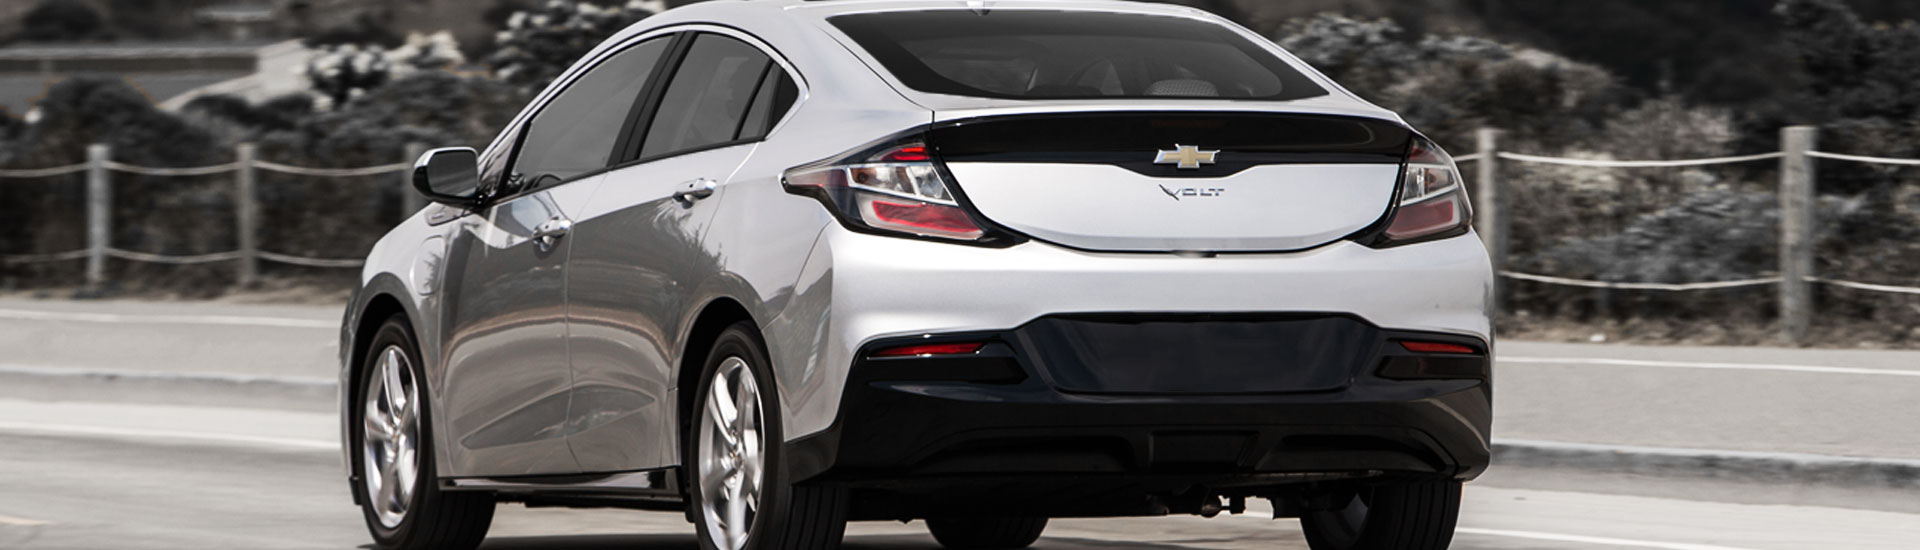 Chevrolet Volt Window Tint